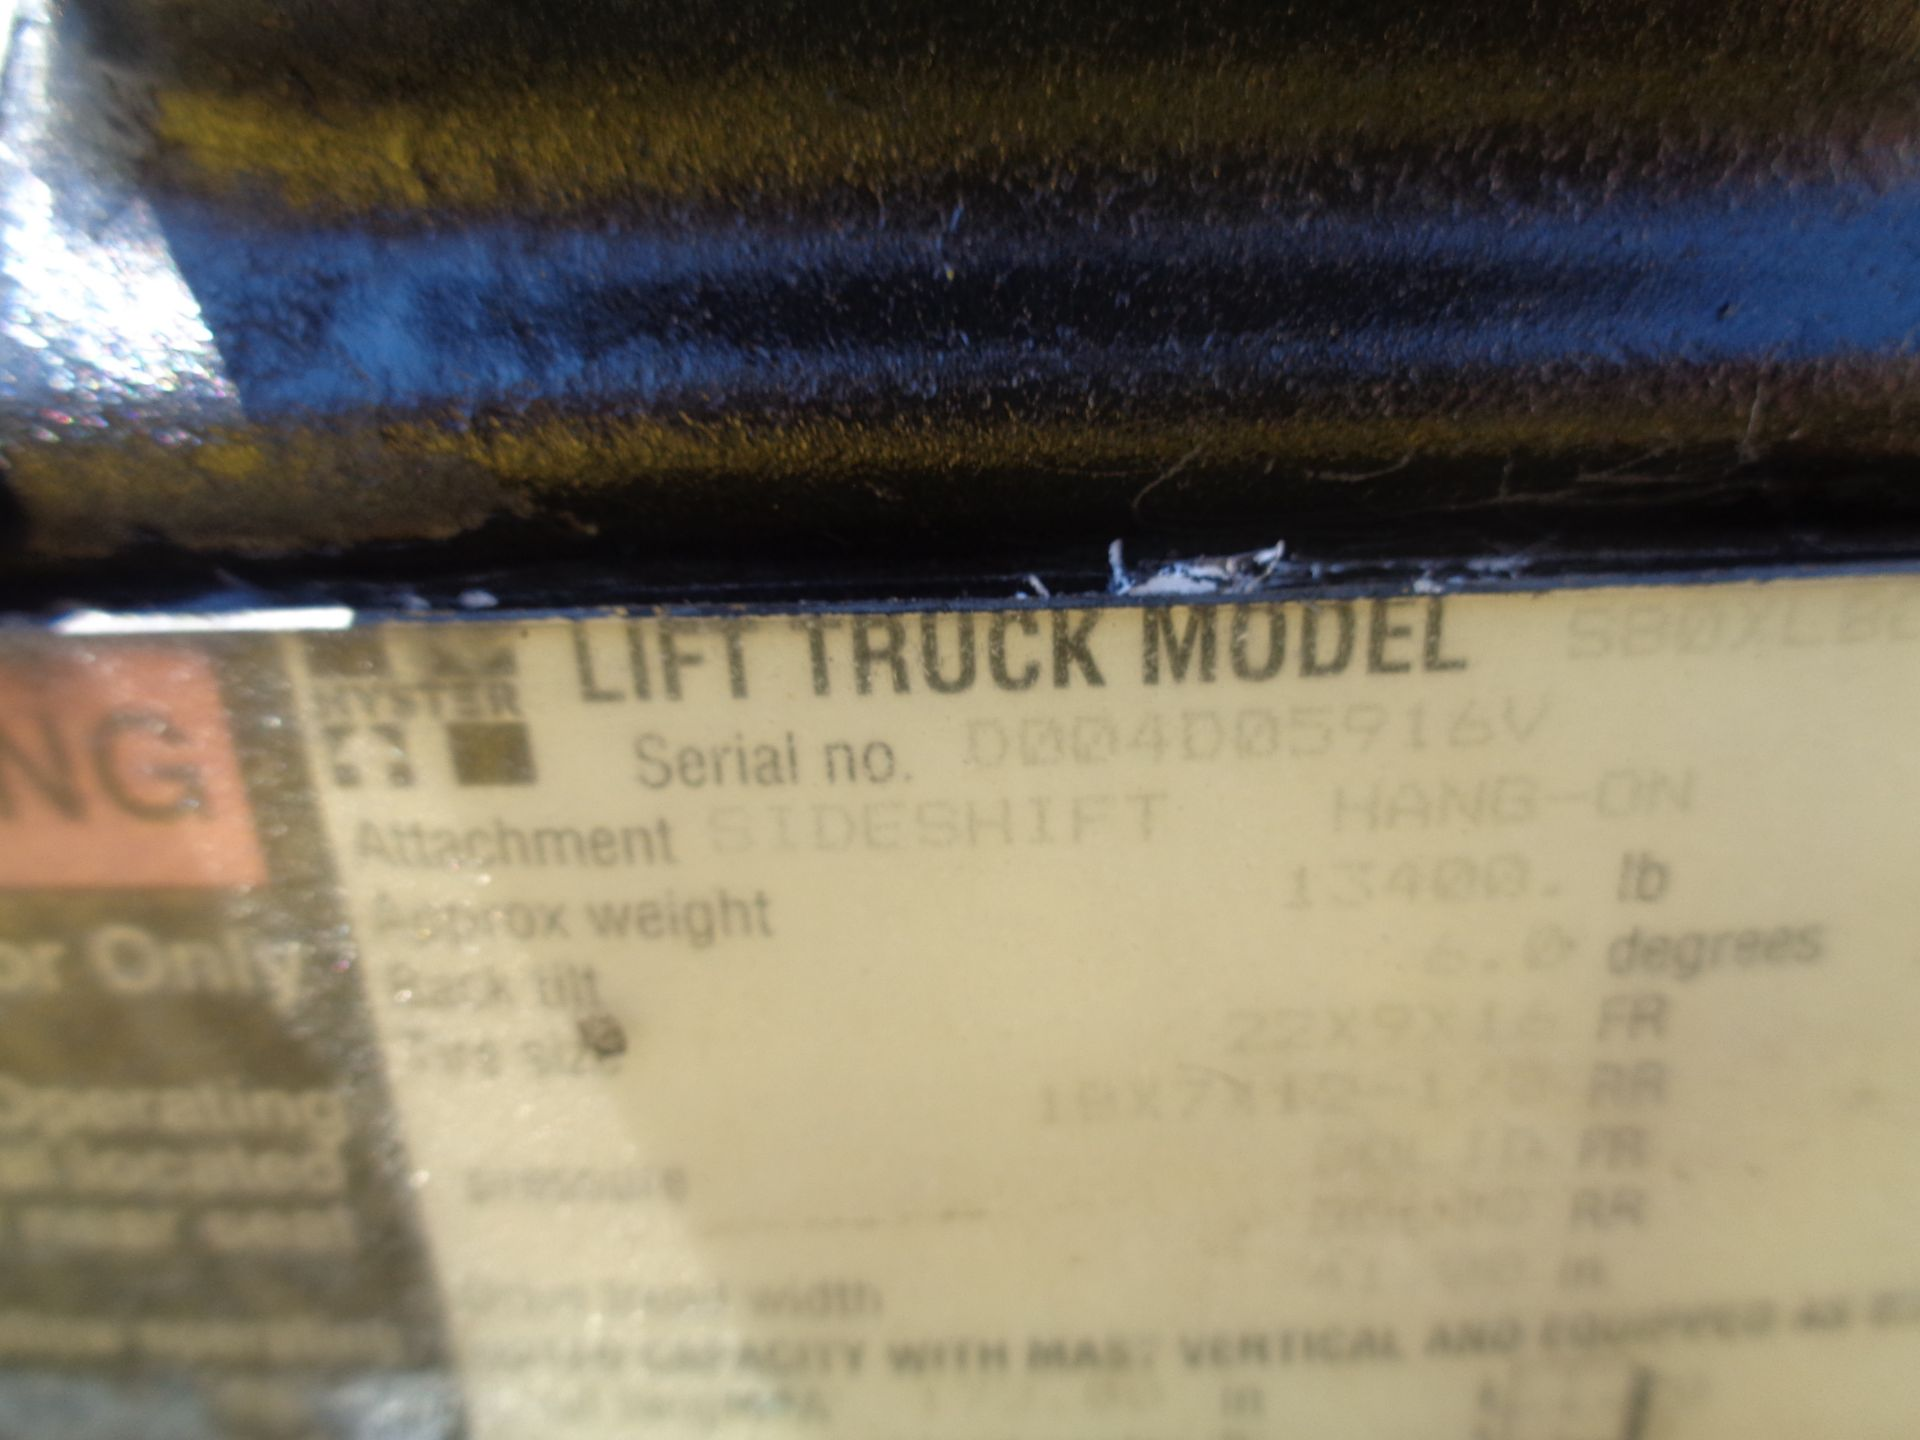 Hyster S80XL 8,000 lbs Forklift - Image 10 of 13